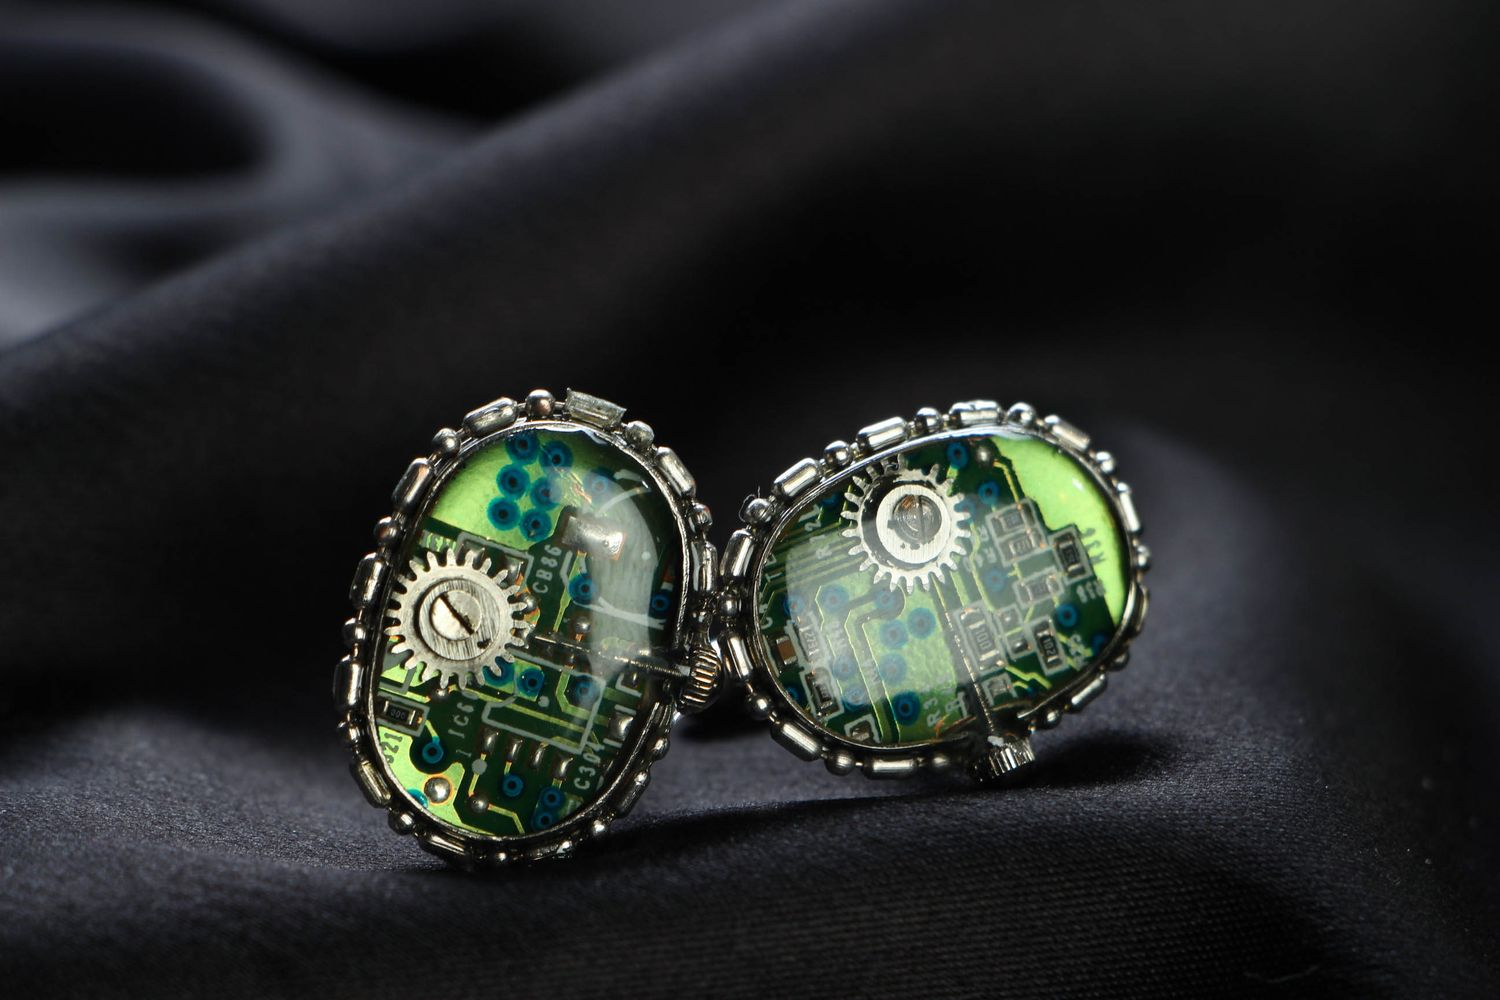 cufflinks Cuff links with clock mechanism - MADEheart.com